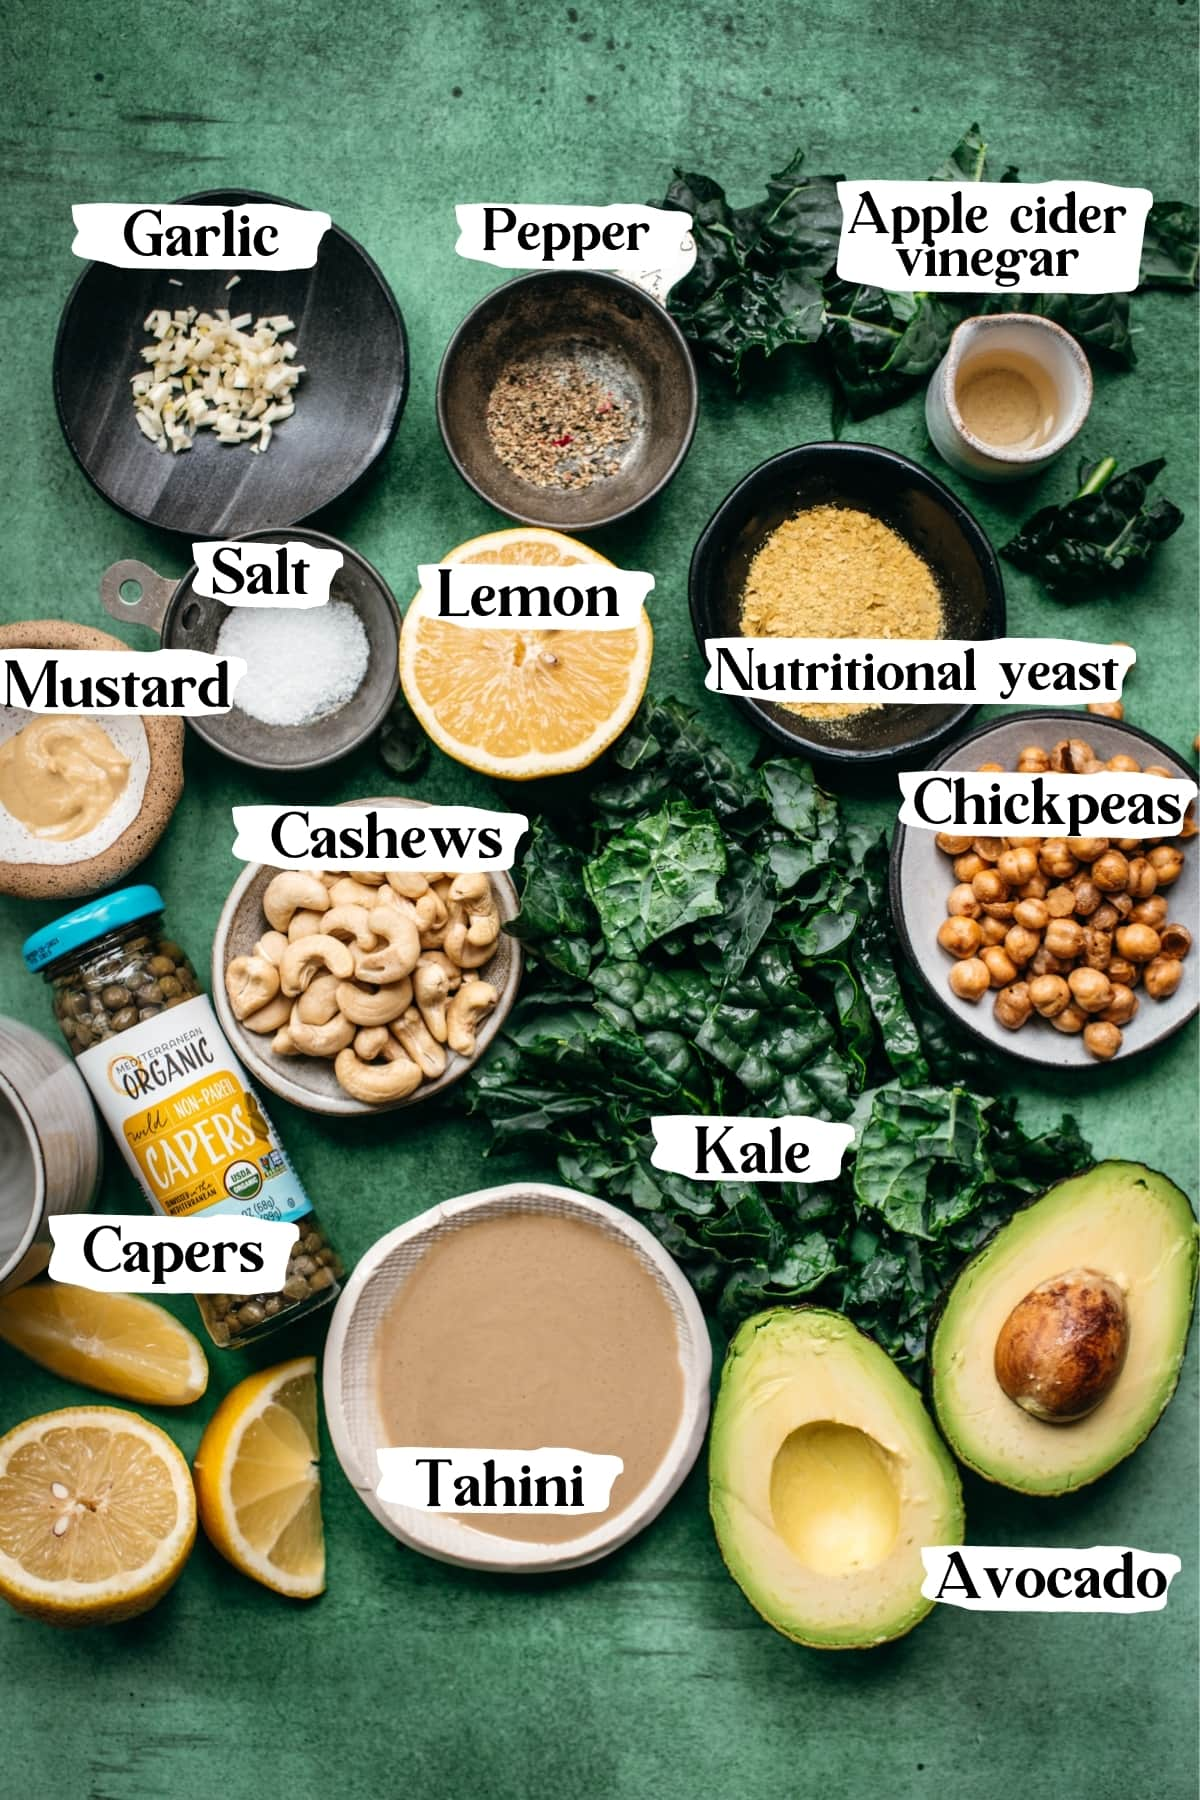 overhead view of ingredients for vegan kale caesar salad with text labels.